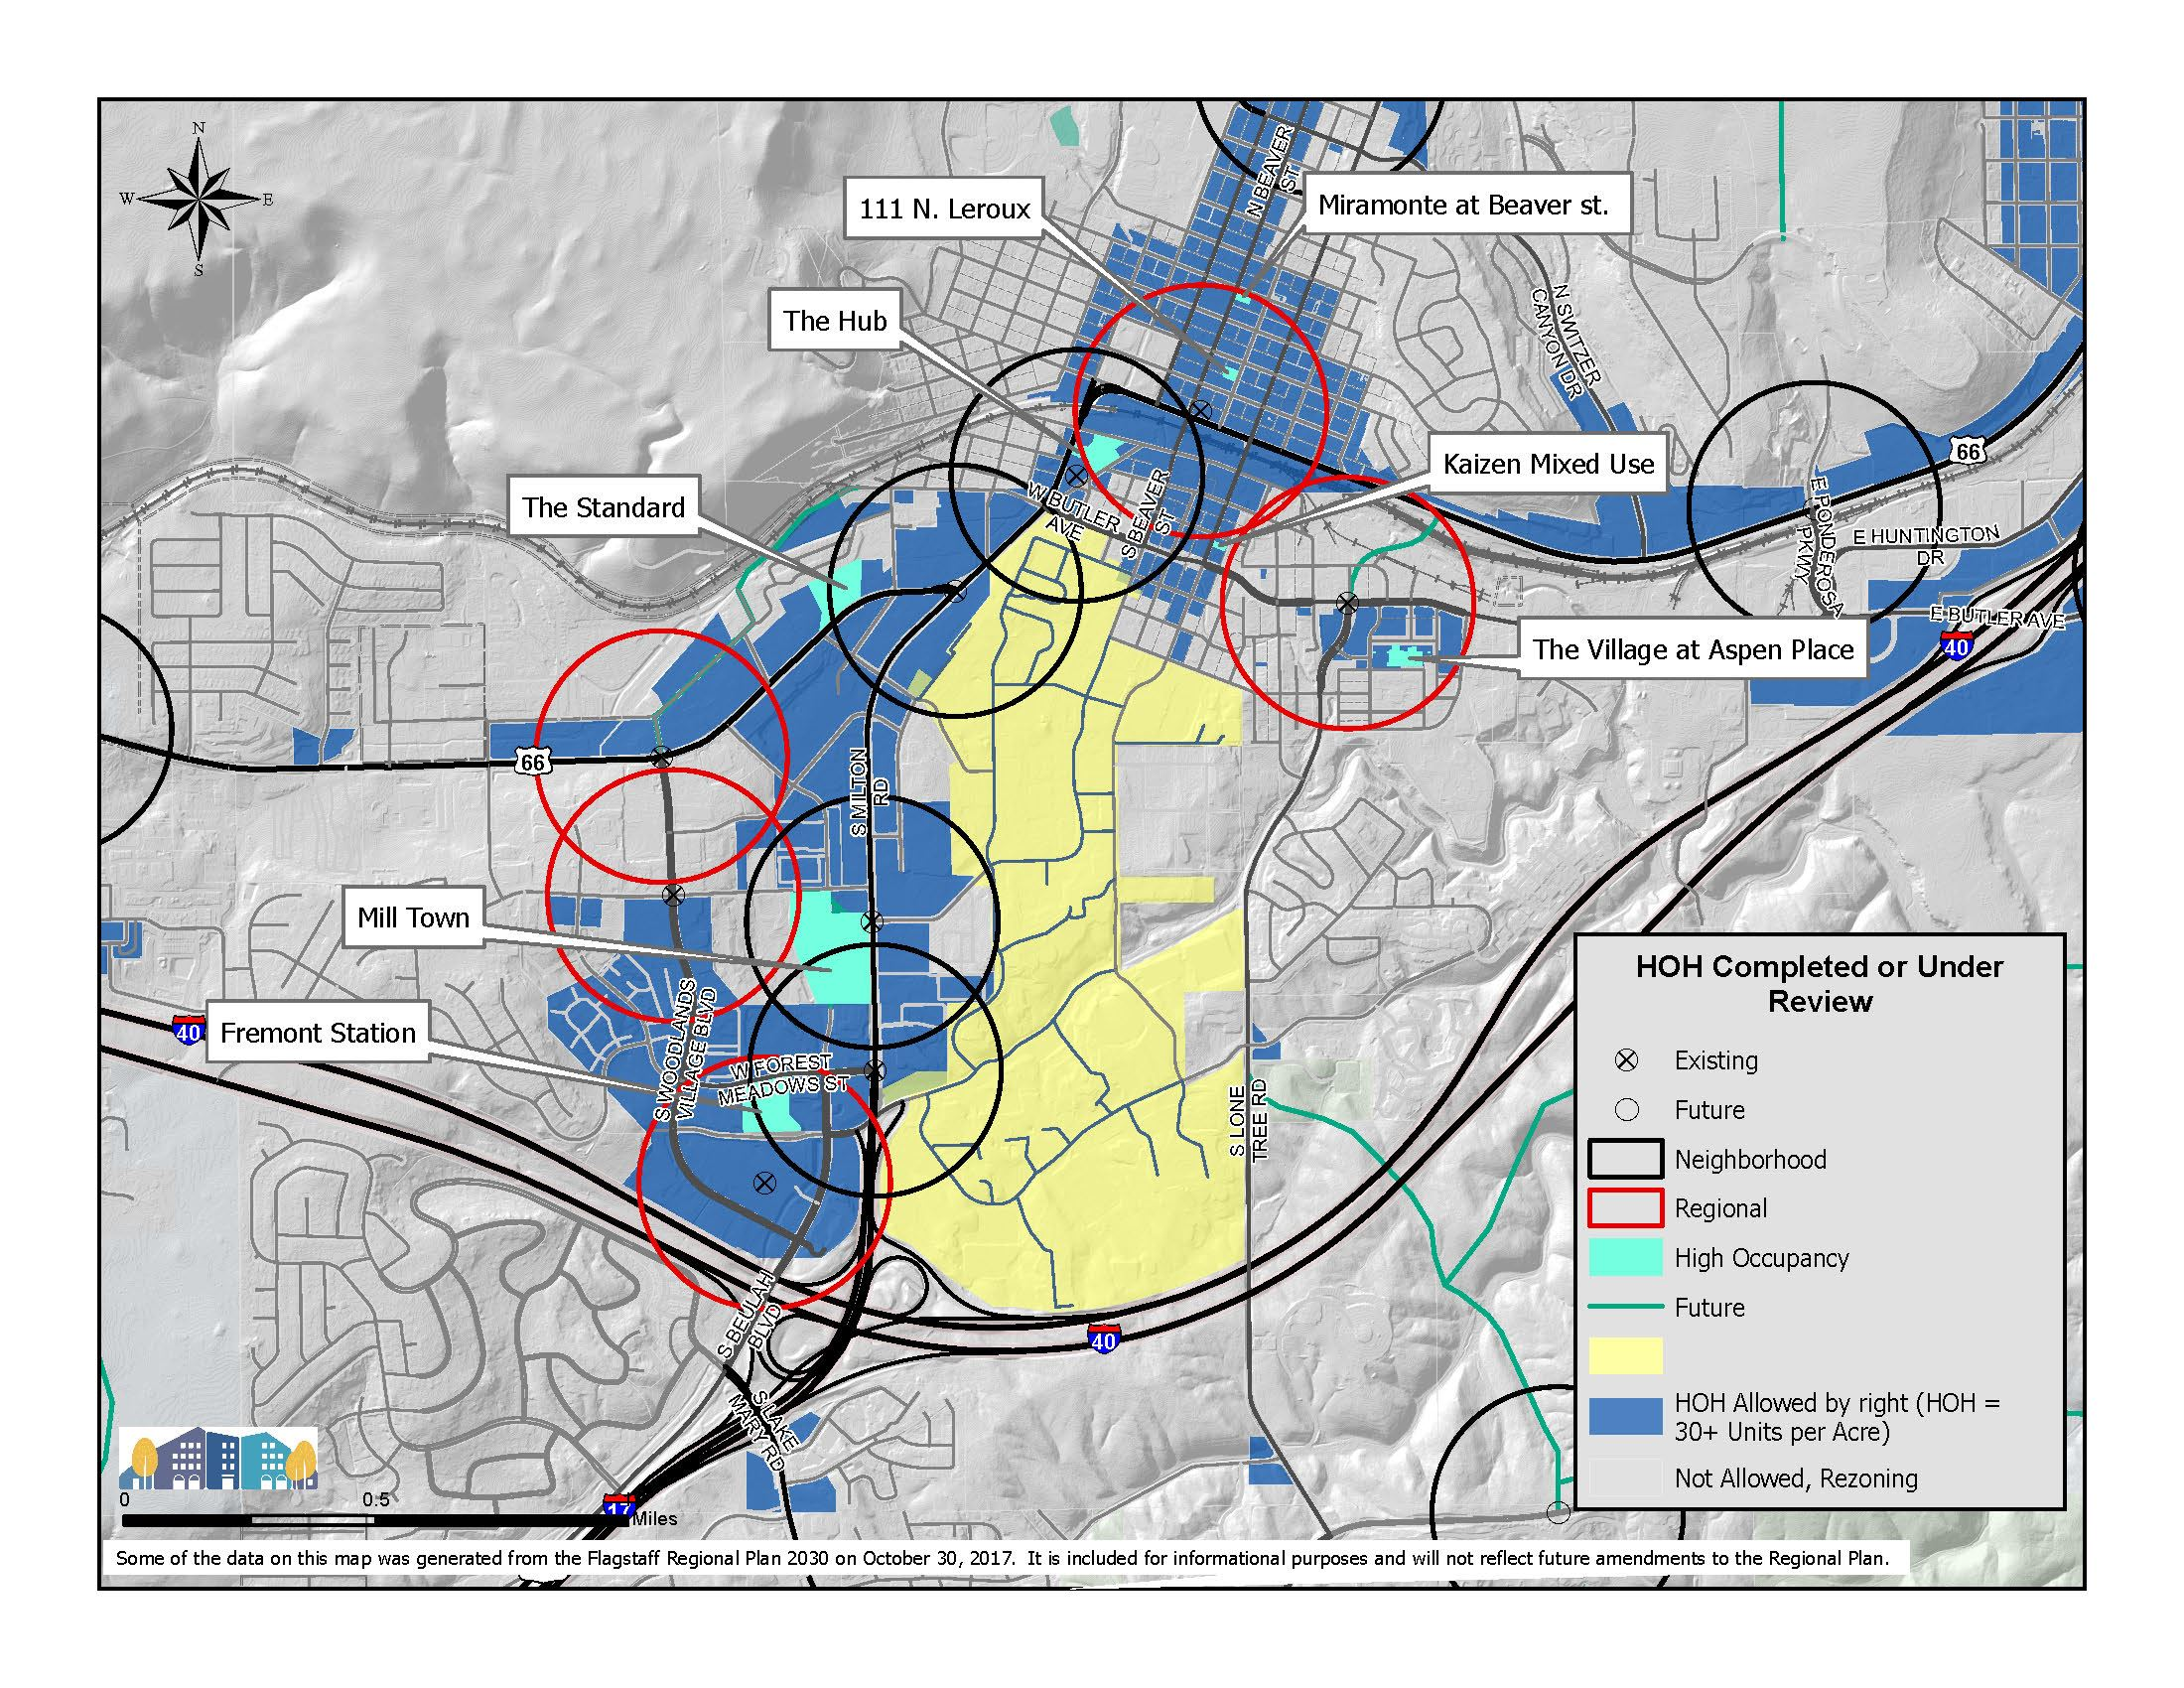 Map of Proposed and Constructed High Occupancy Housing projects